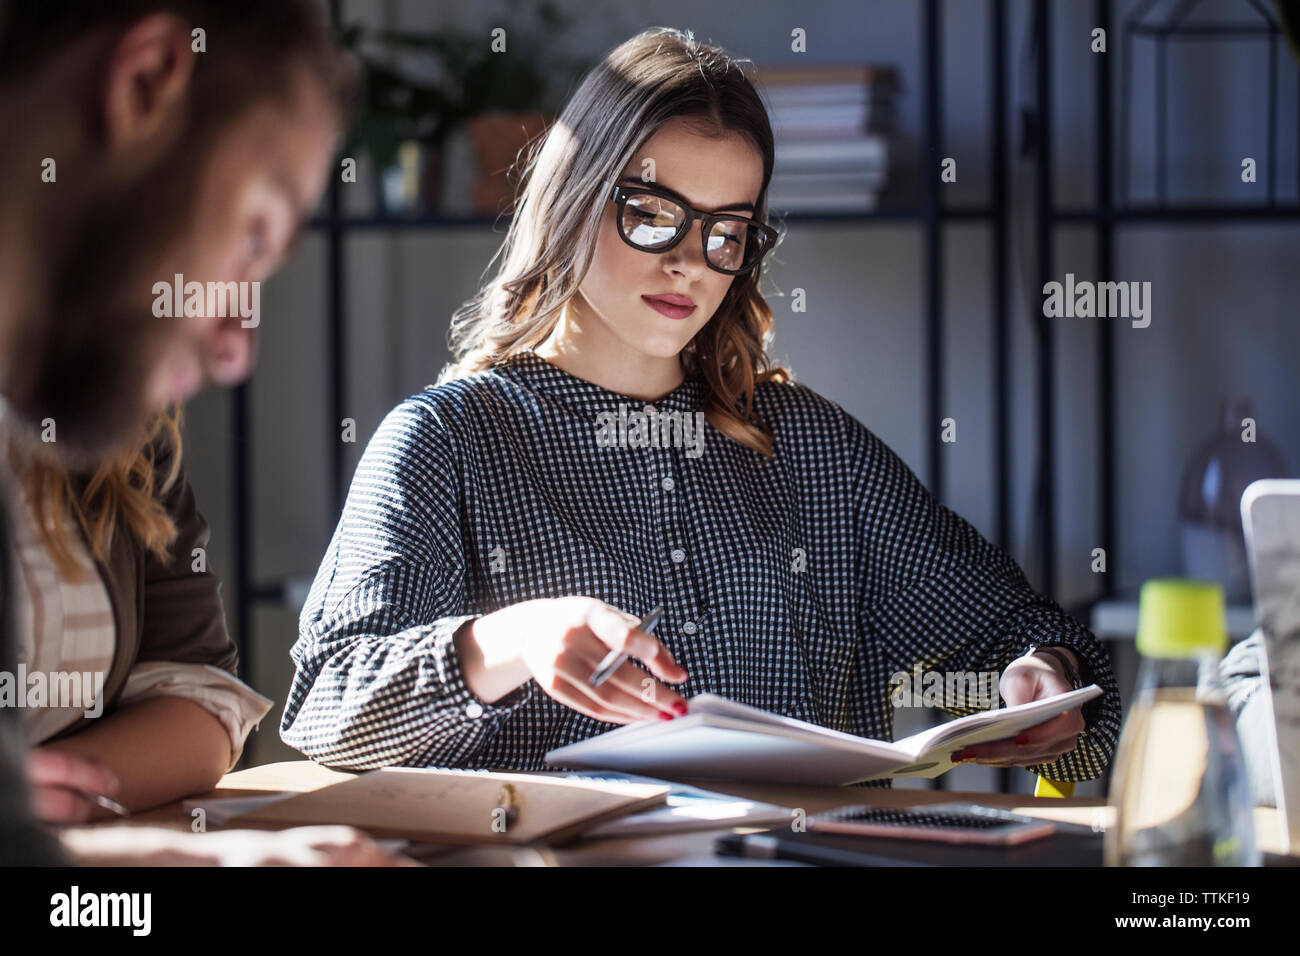 Woman studying while sitting with friends at table in classroom Stock Photo